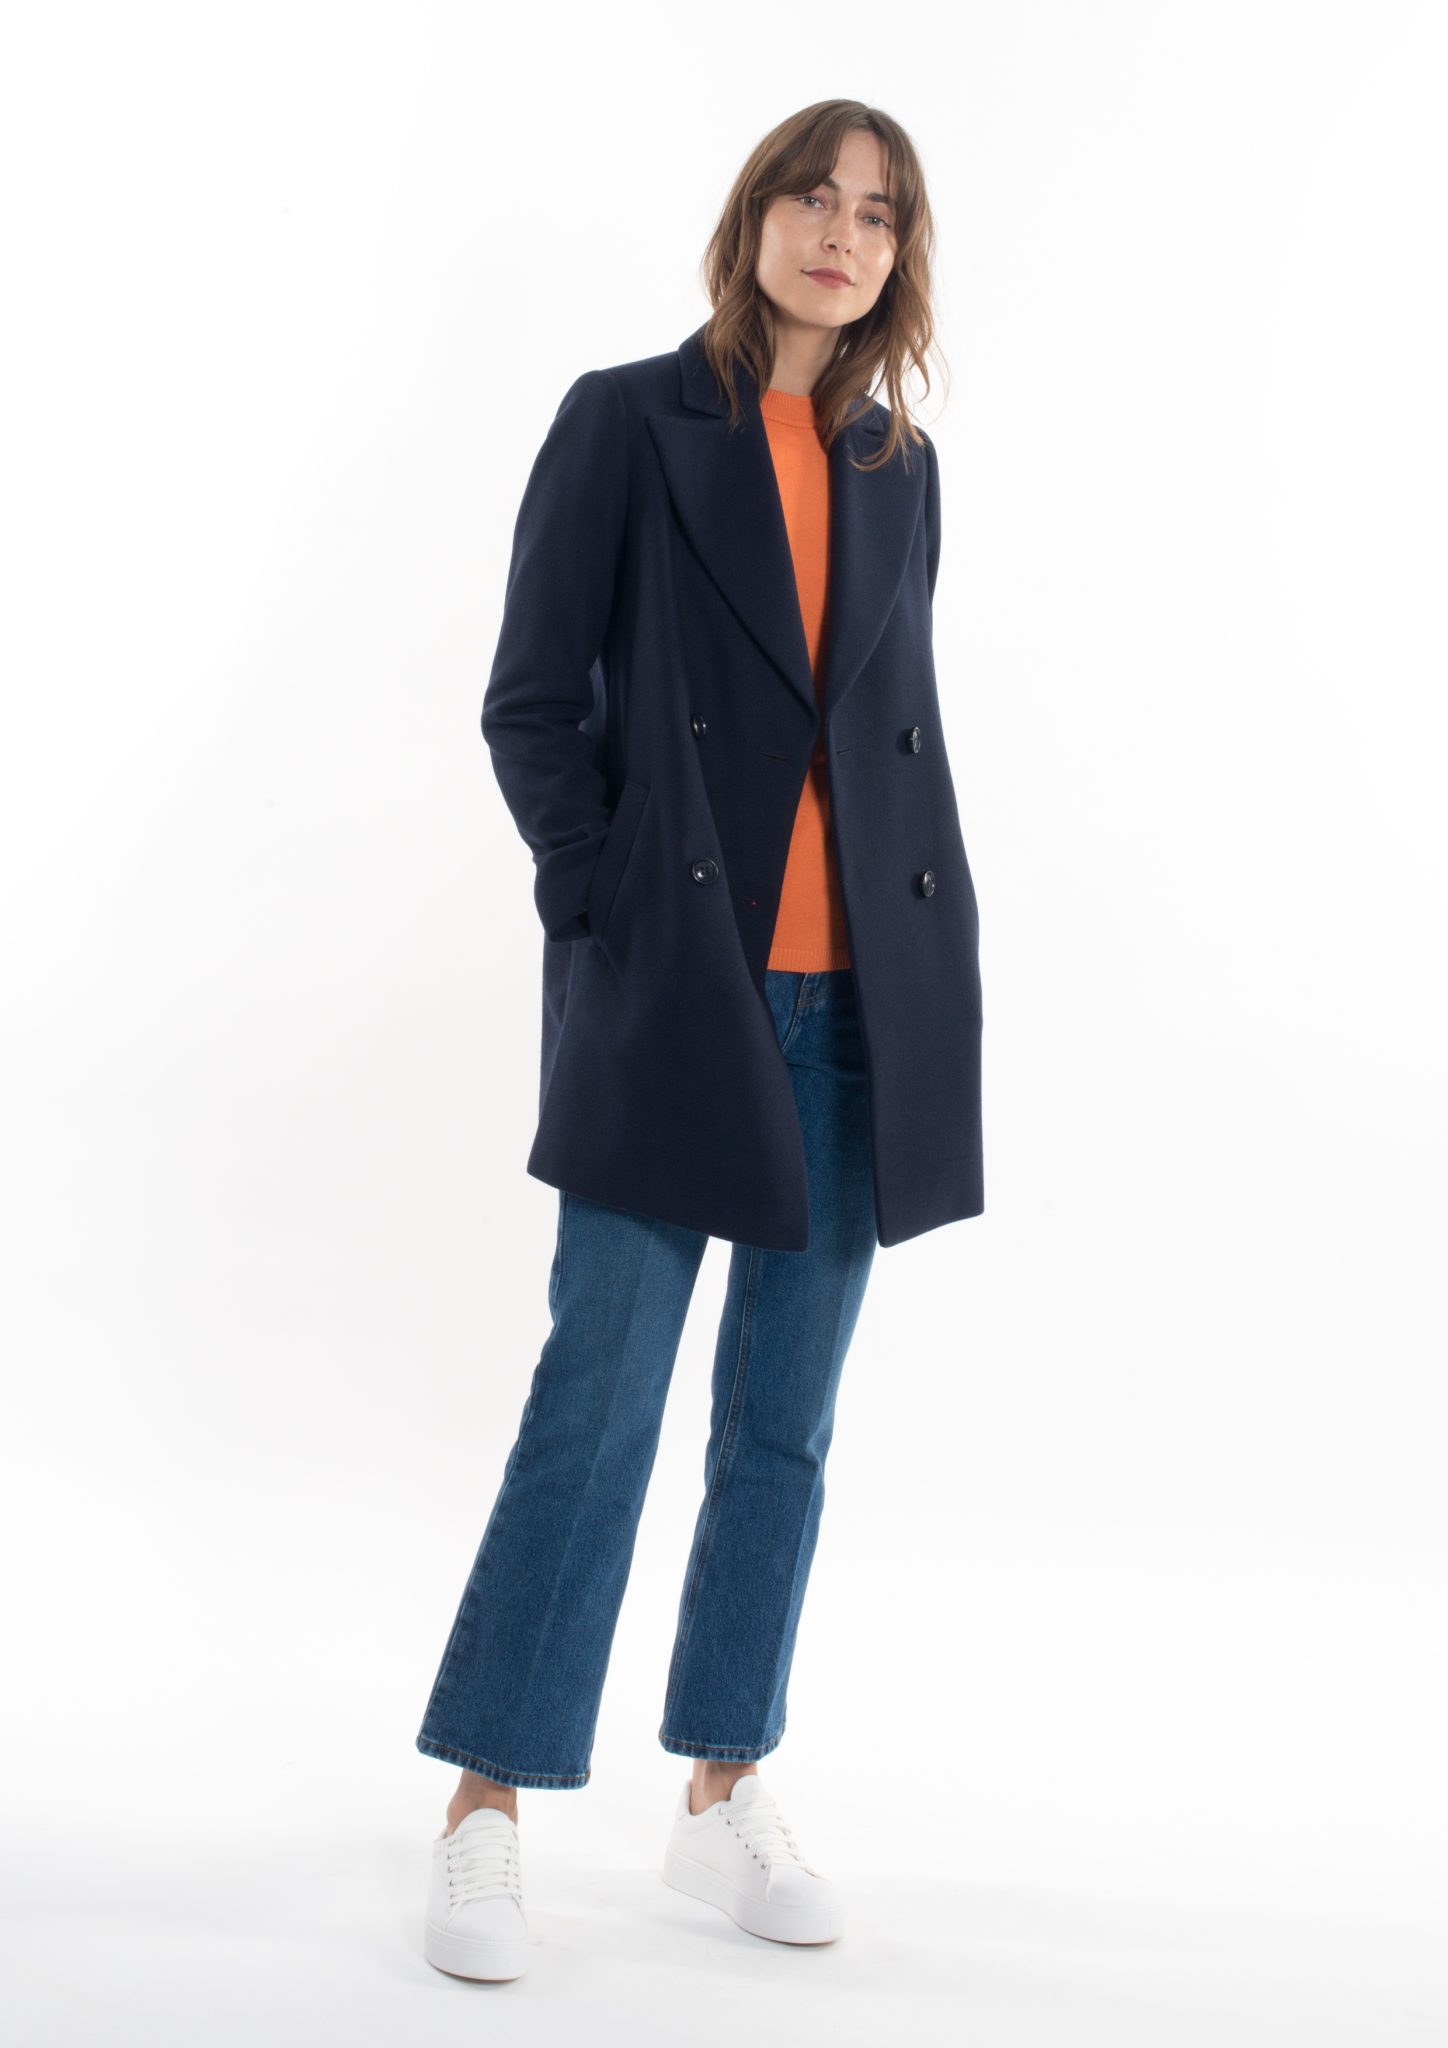 huge selection of great look first rate Gianni Feraud Ladies Navy Oversized Peacoat